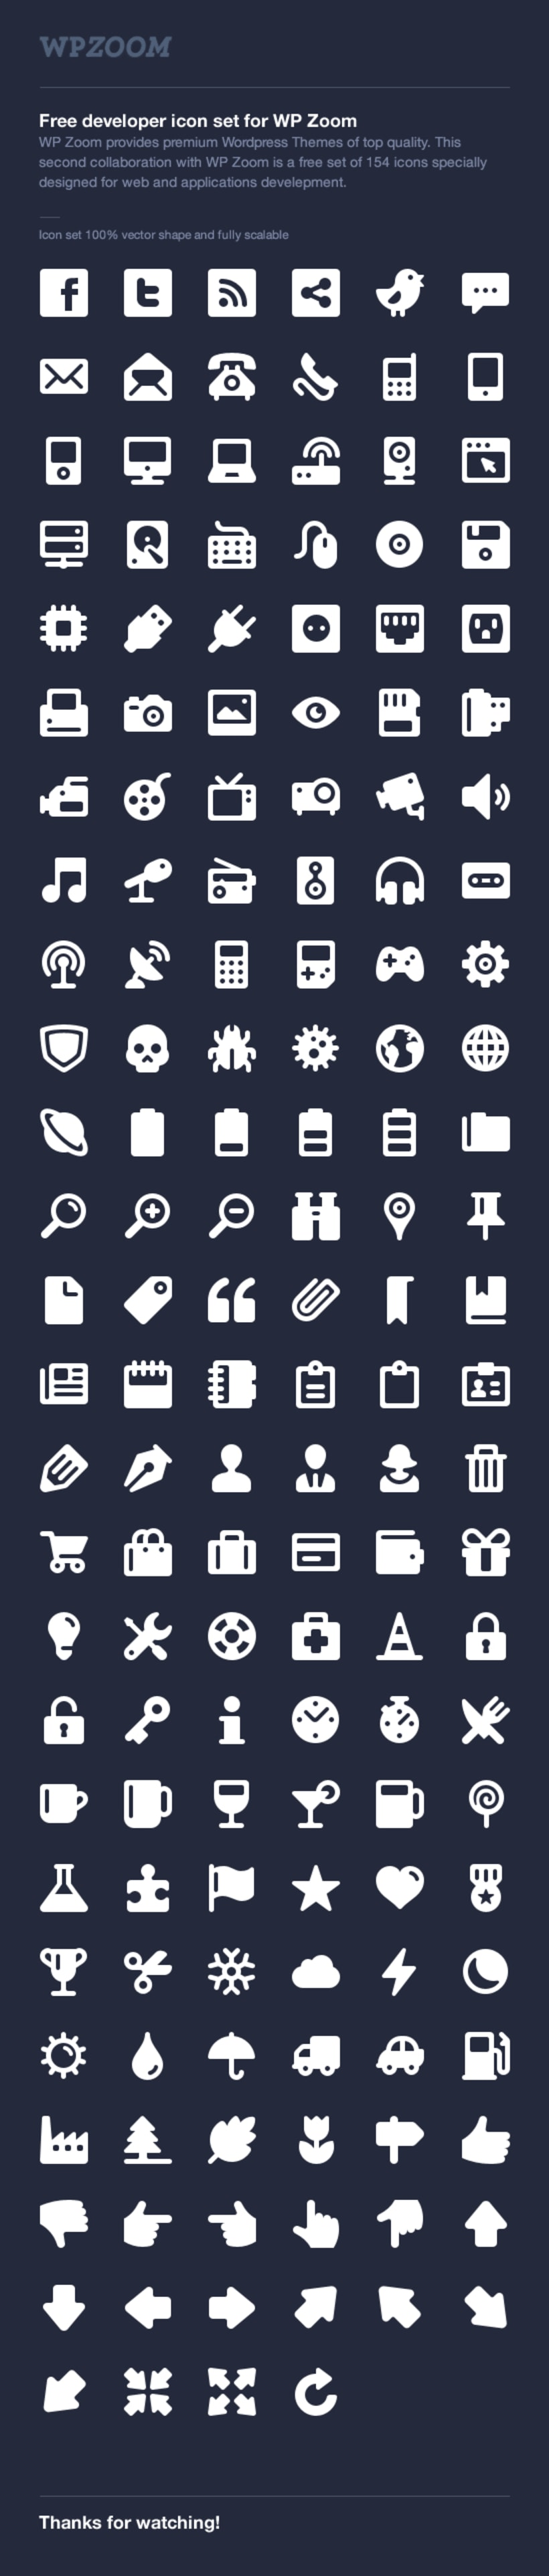 WP Zoom Developer Icon Set 1